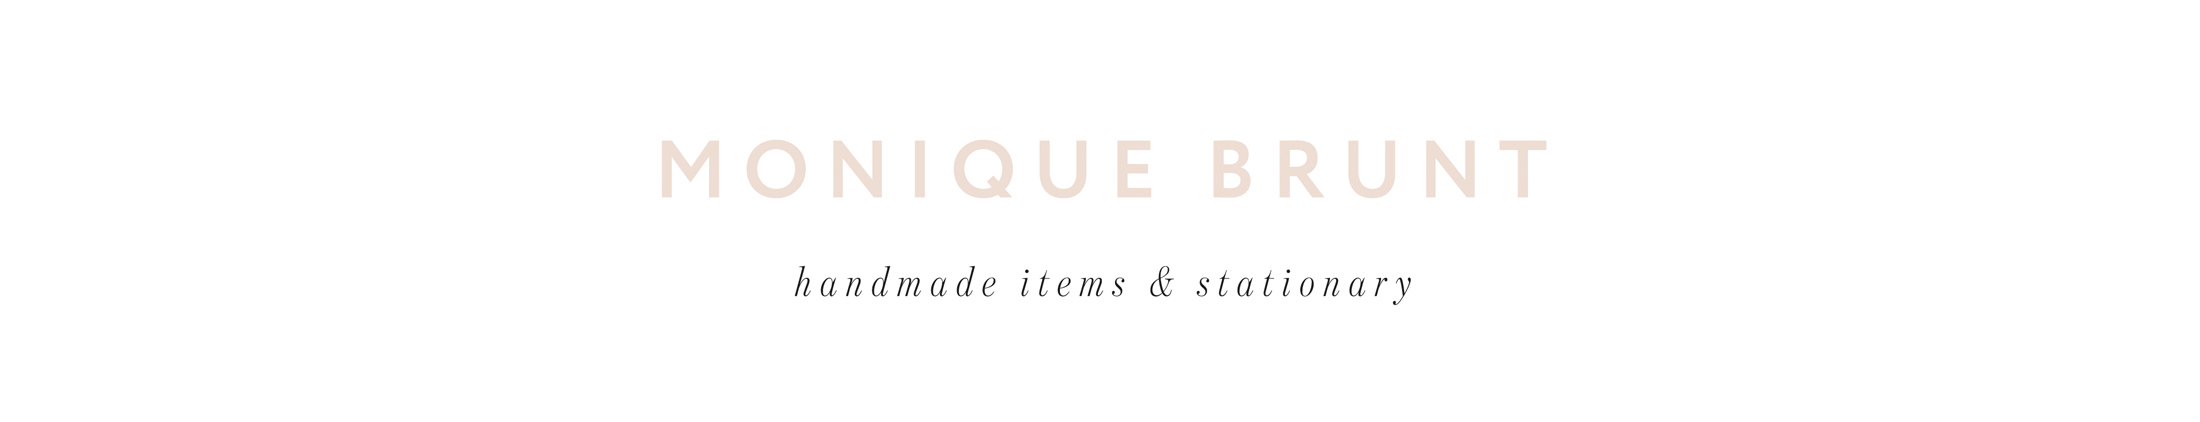 Monique Brunt Shop